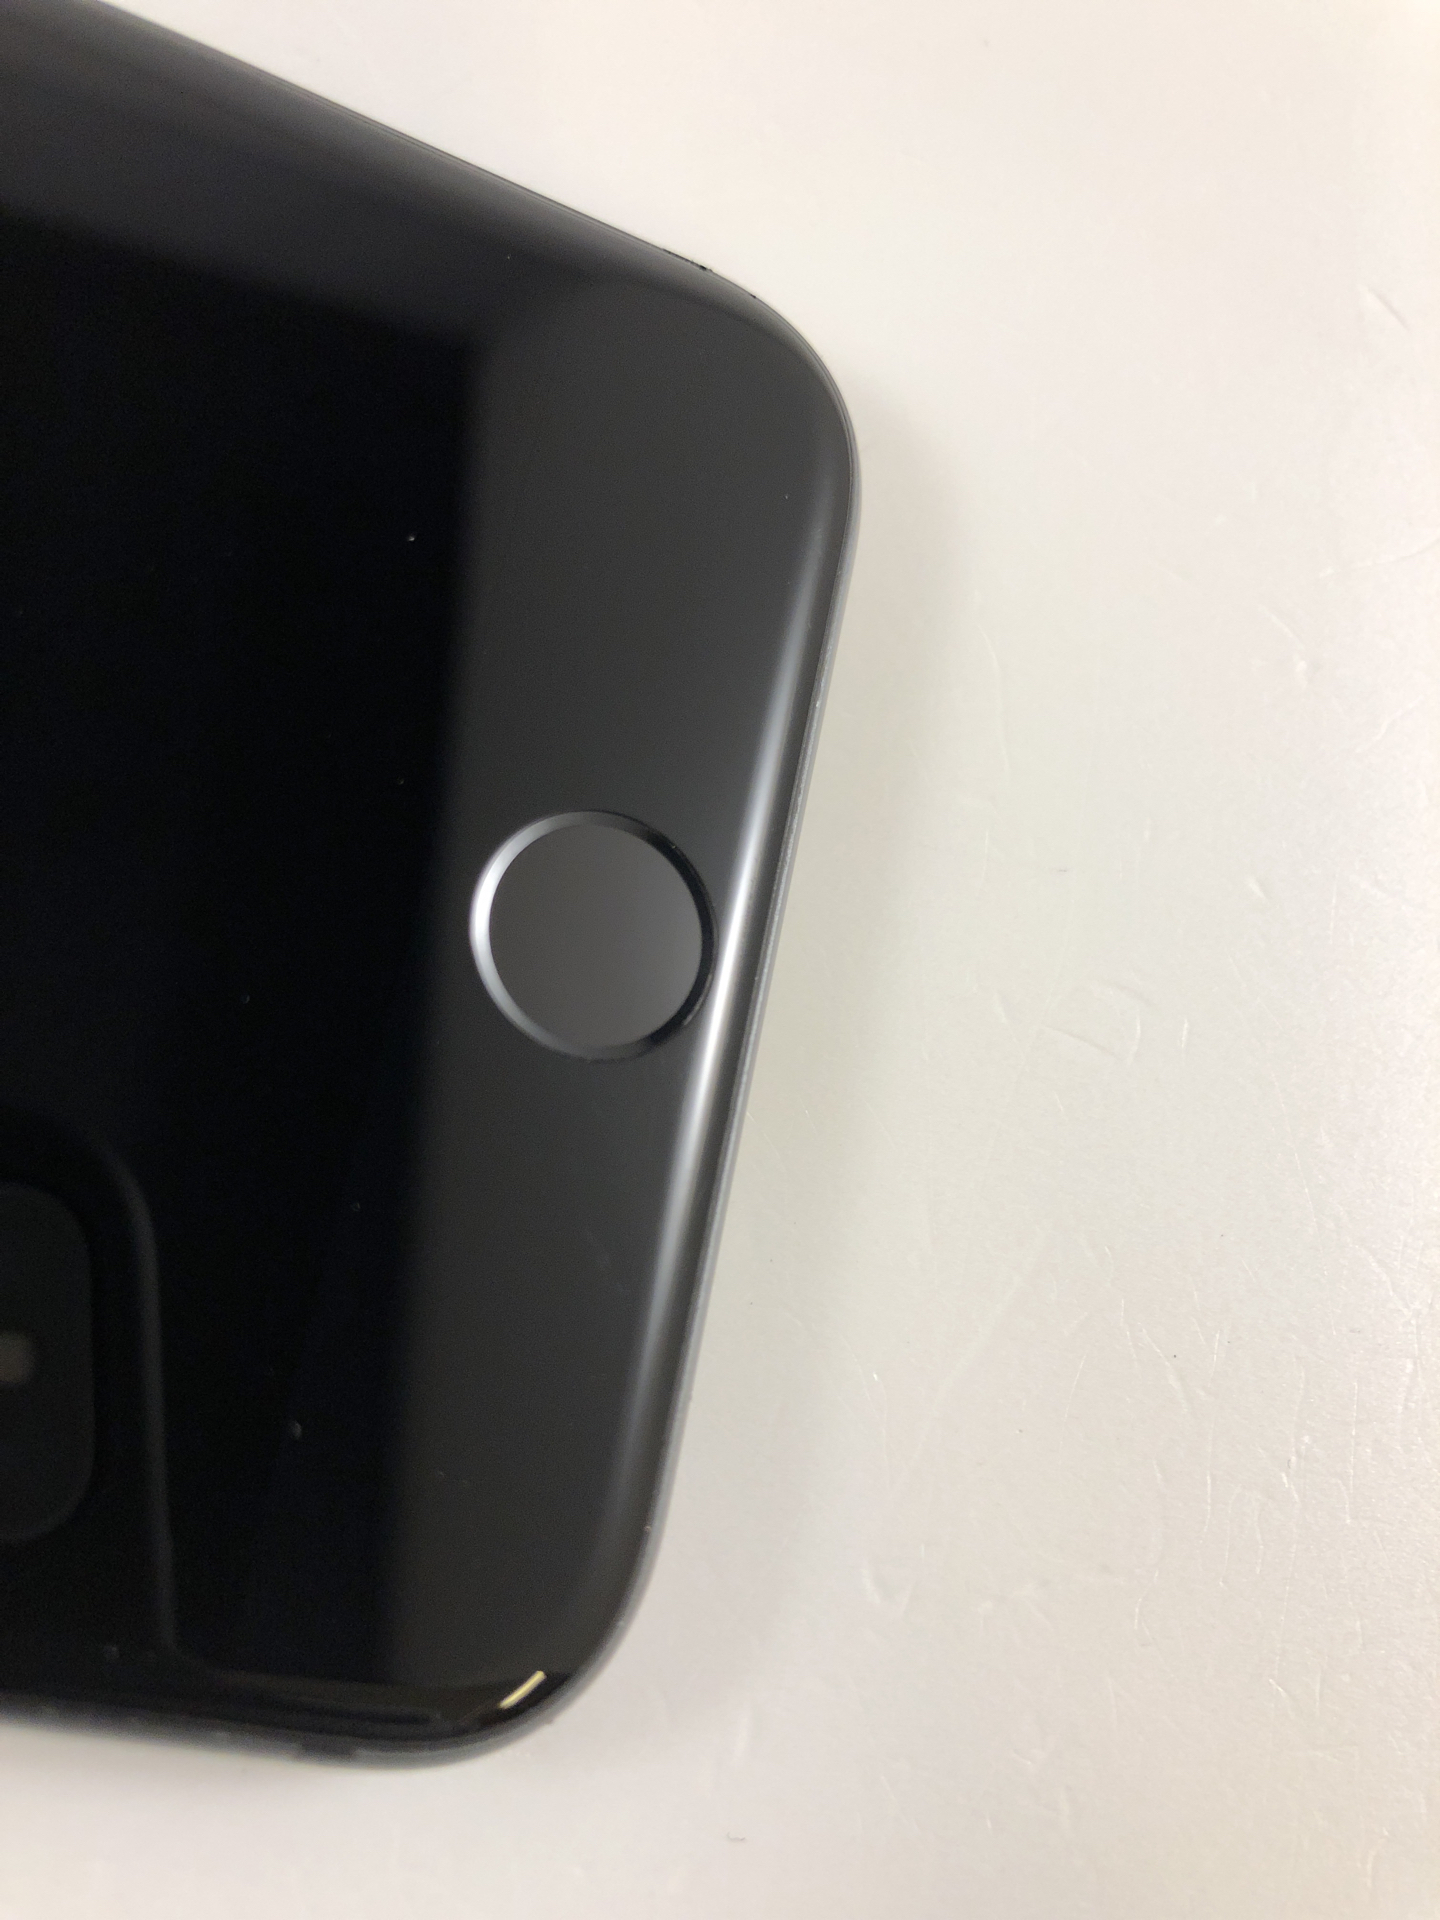 iPhone 8 64GB, 64GB, Space Gray, bild 5